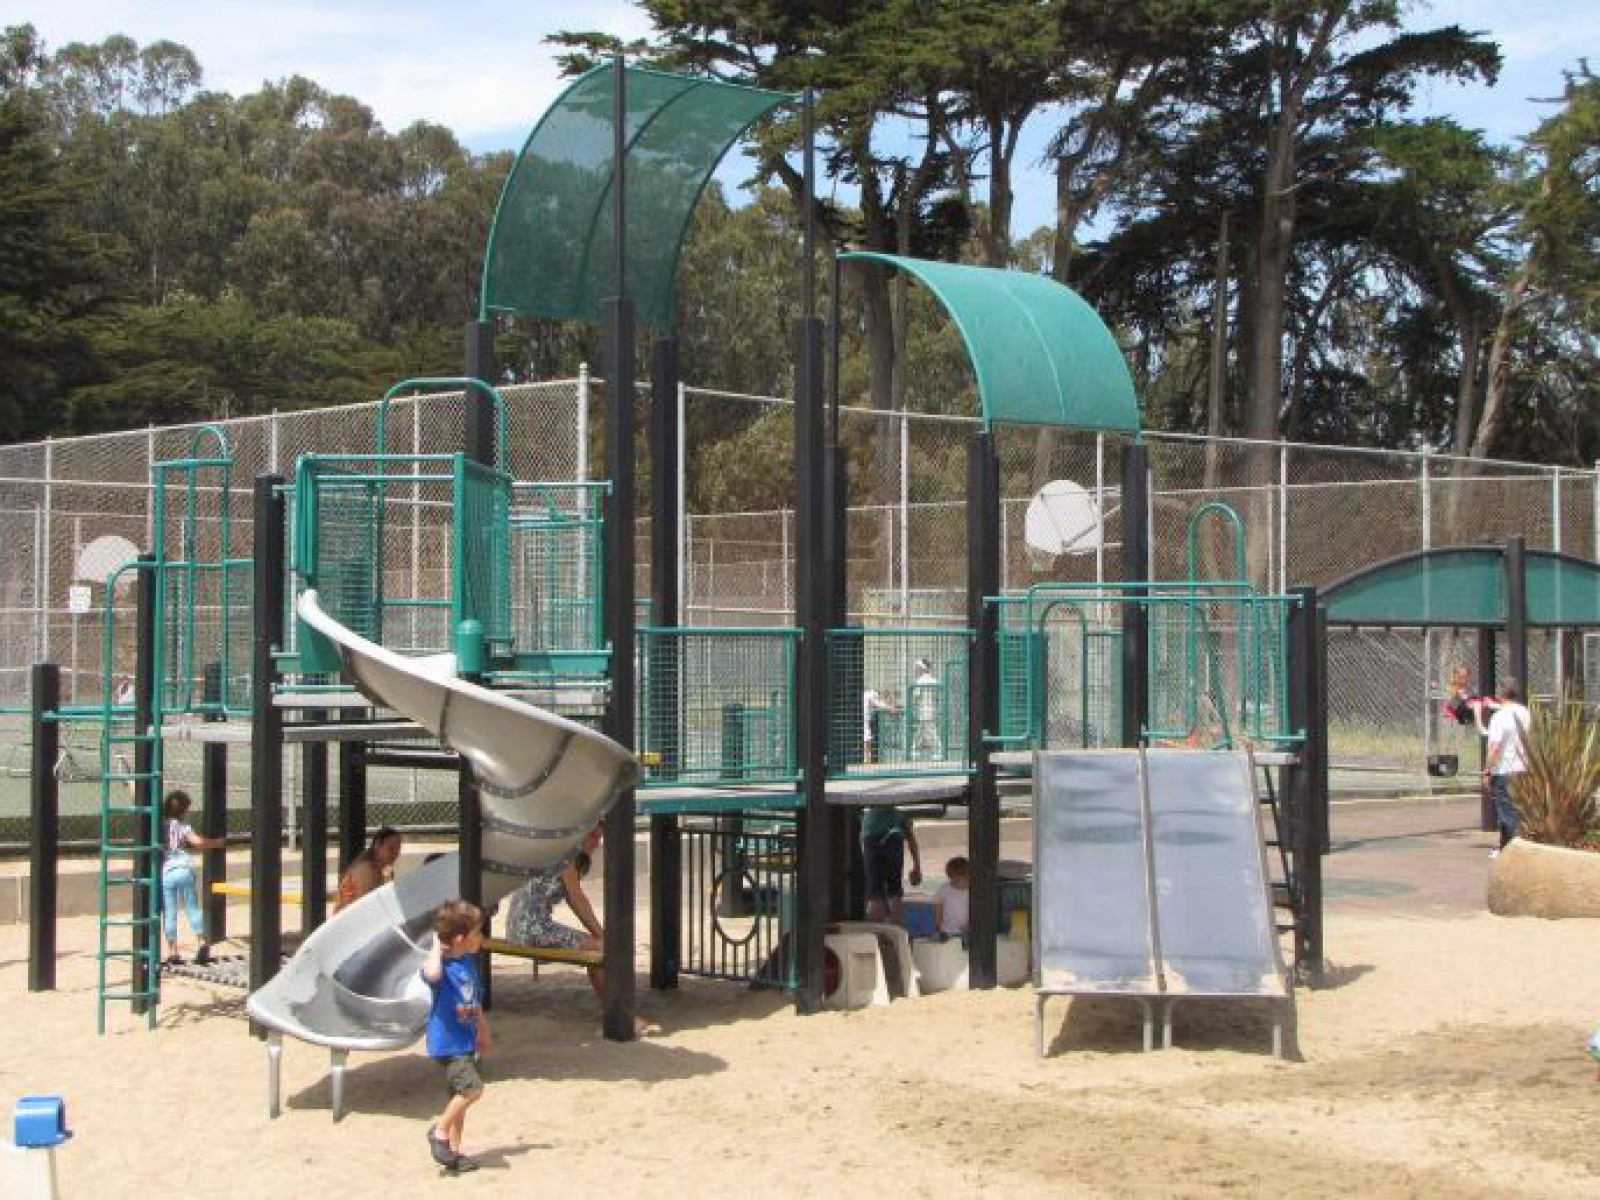 Julius Kahn Playground, San Francisco, CA, United States